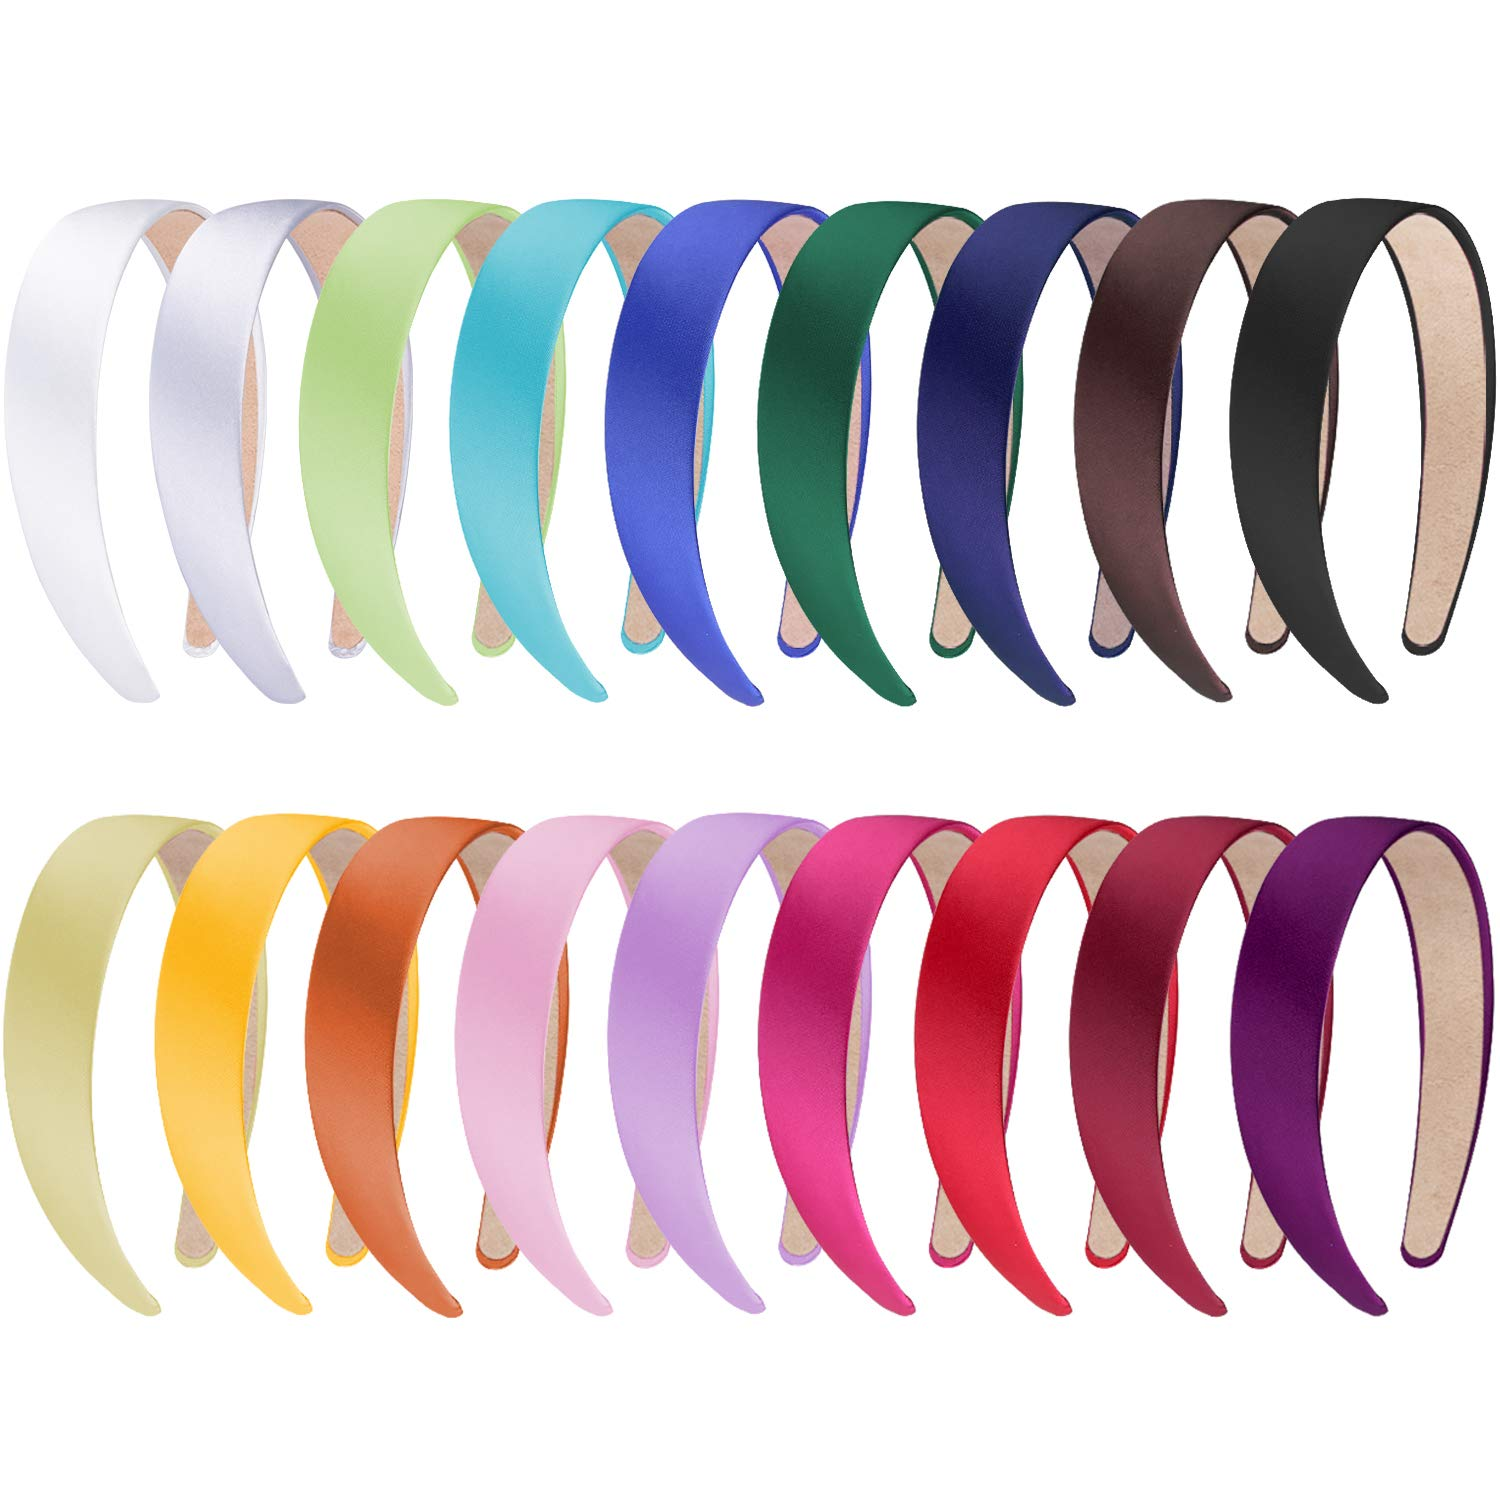 18 Pieces Satin Headbands 1 Inch Wide Non-slip Headband Colourful DIY Headbands for Women and girls, 18 Colours